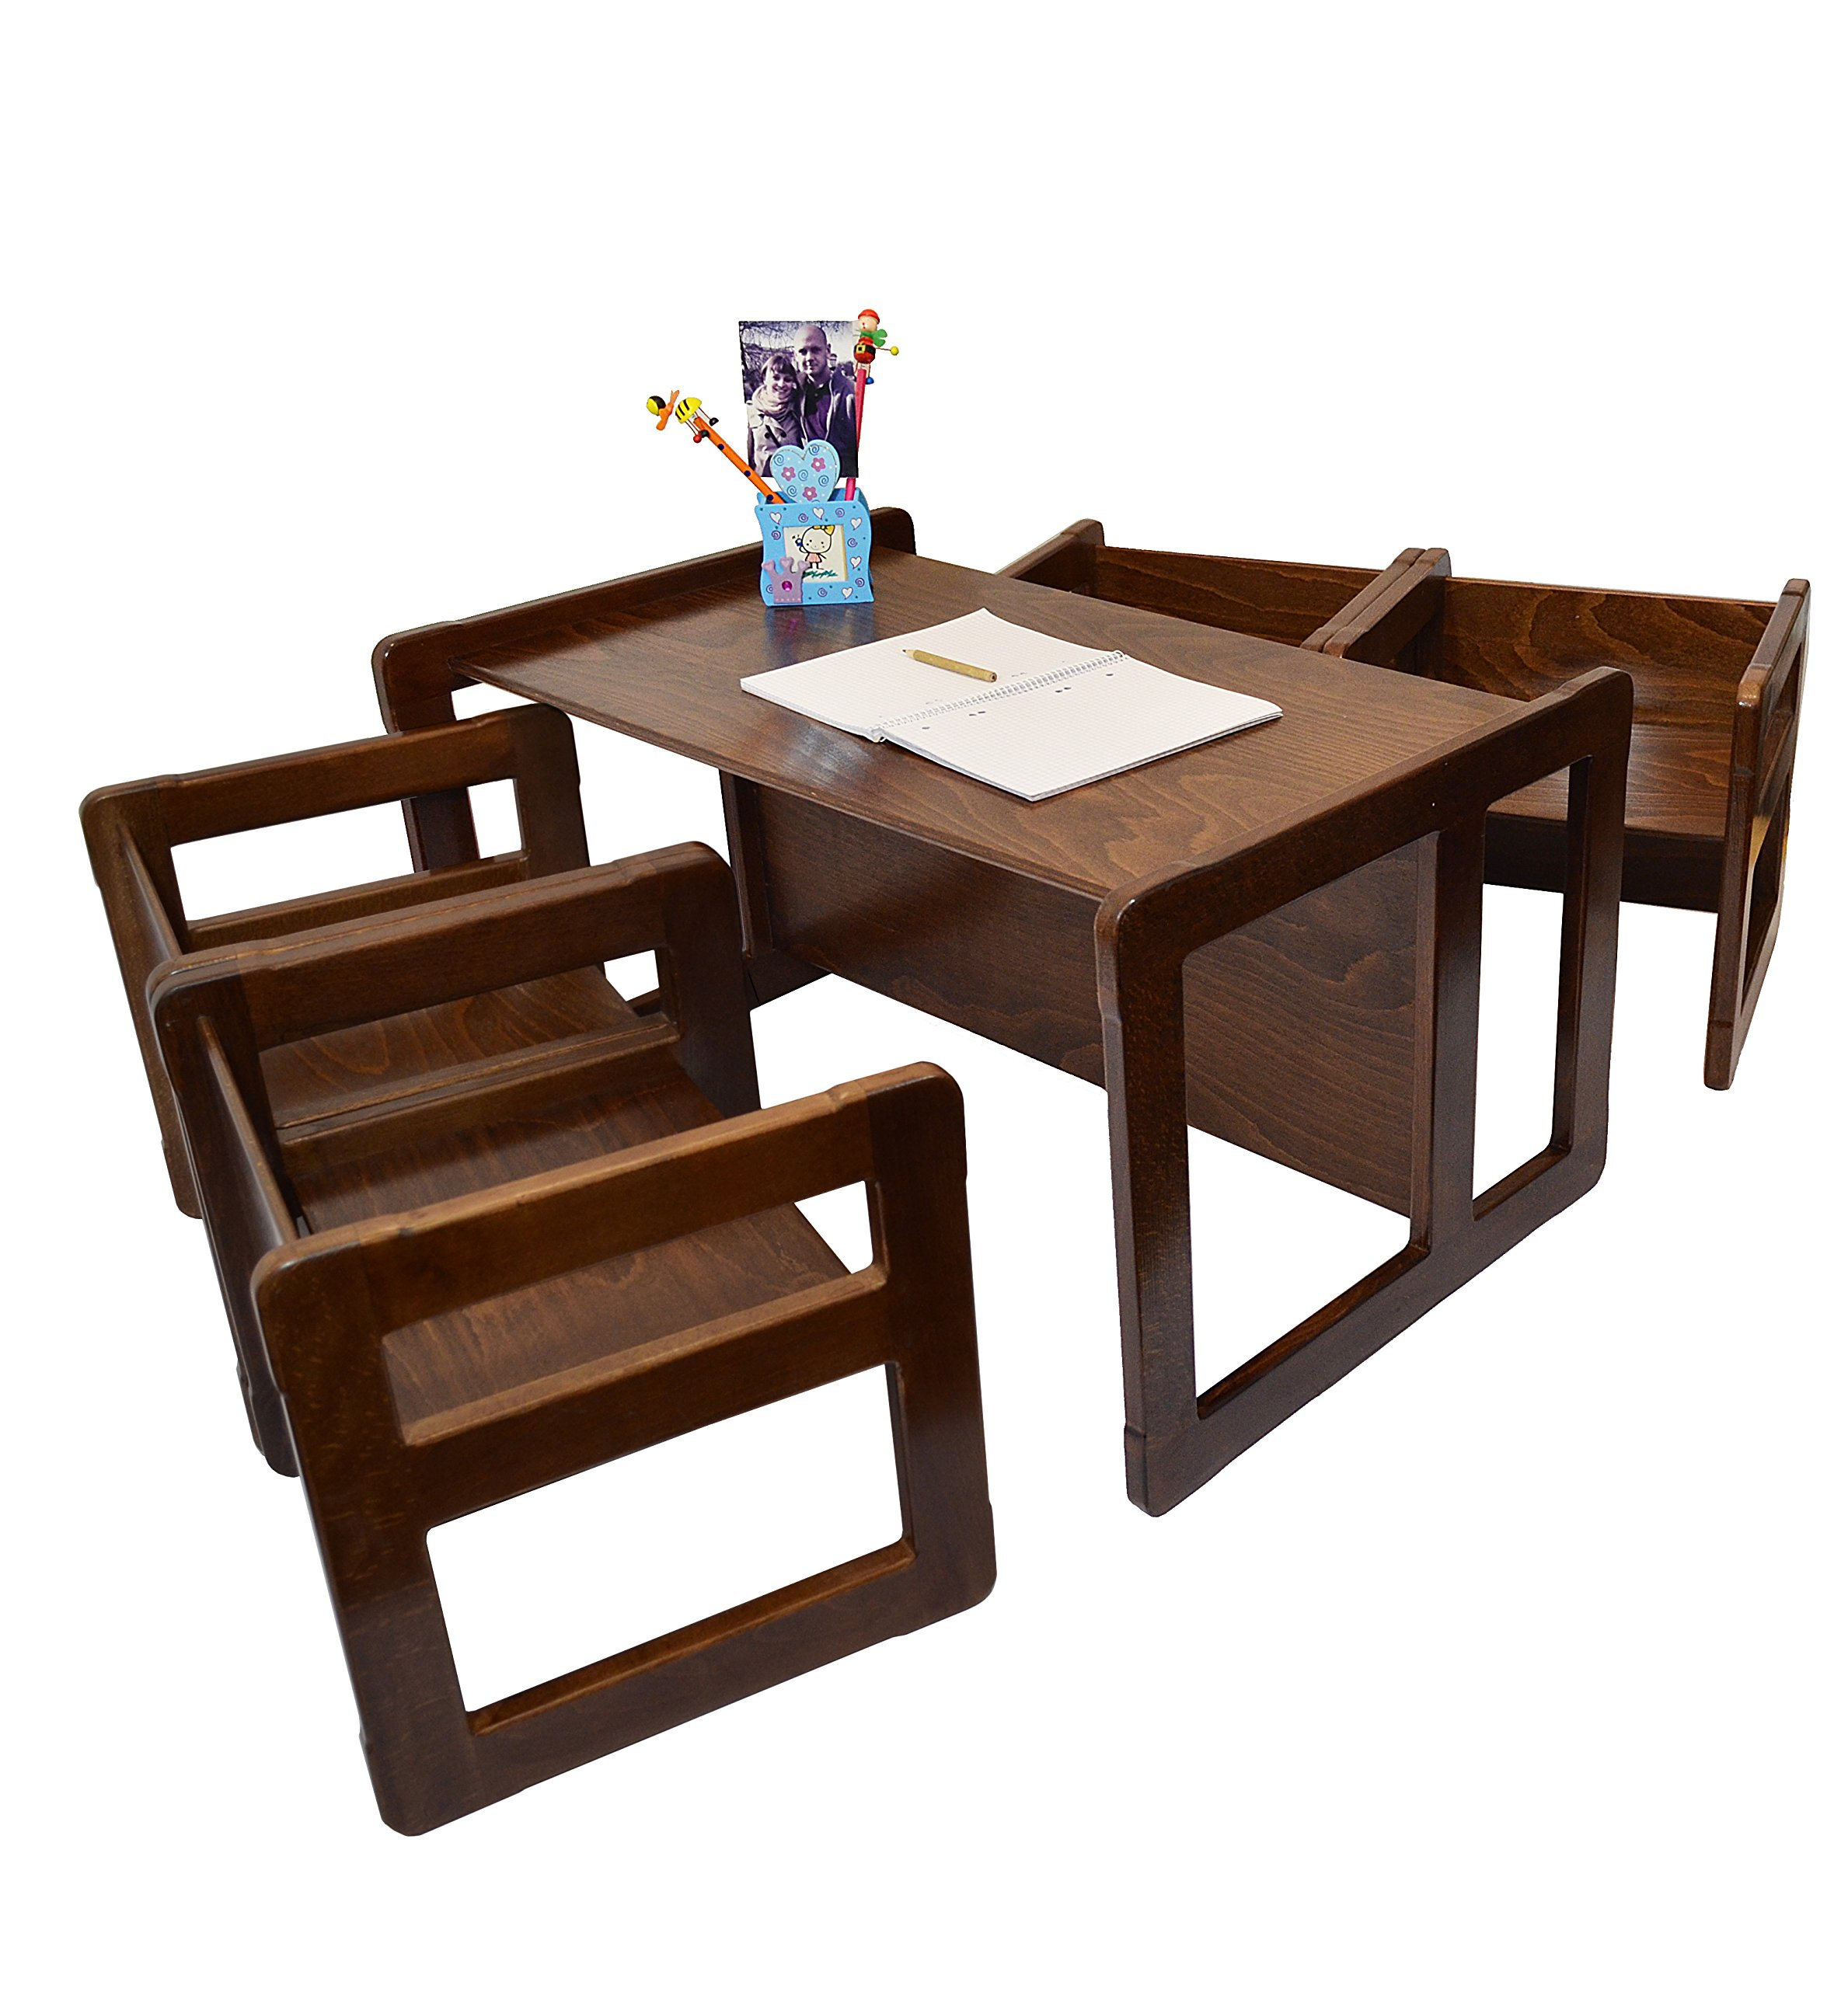 3 in 1 Childrens Multifunctional Furniture Set of 5, Four Small Chairs or Tables and One Large Bench or Table Beech Wood, Dark Stained